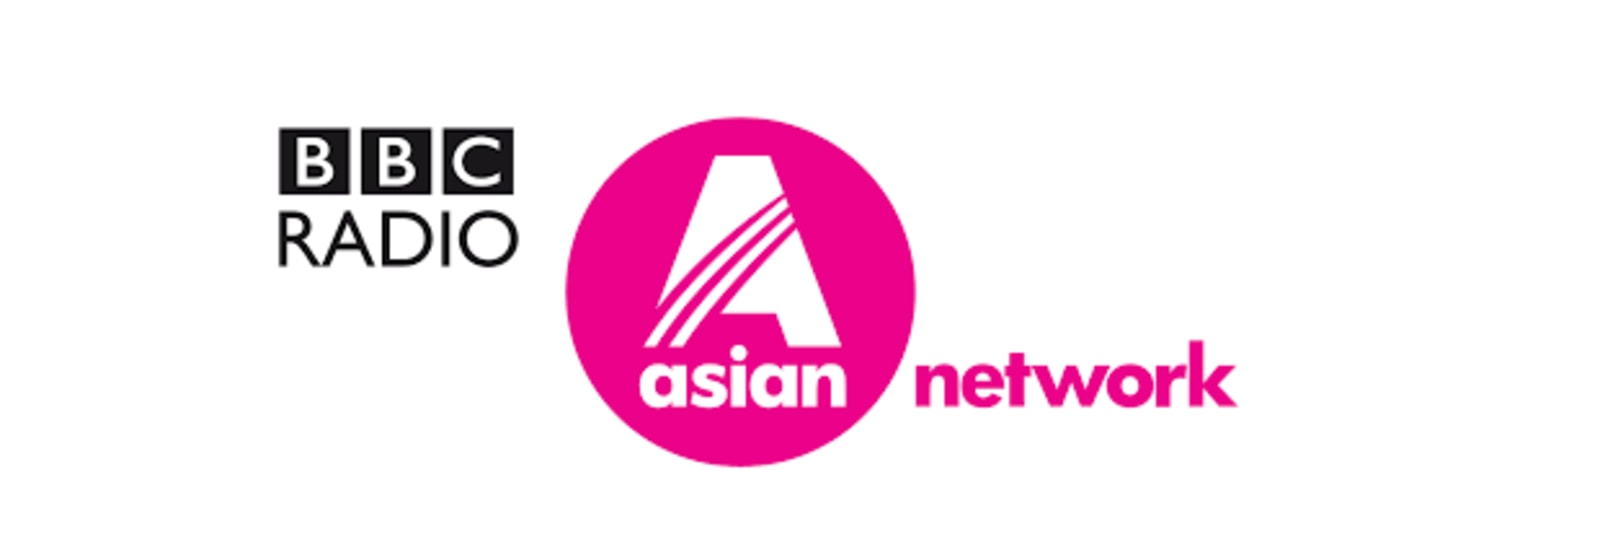 BBC Asian Network creates new Coronavirus advice videos in South Asian languages to target vaccine disinformation